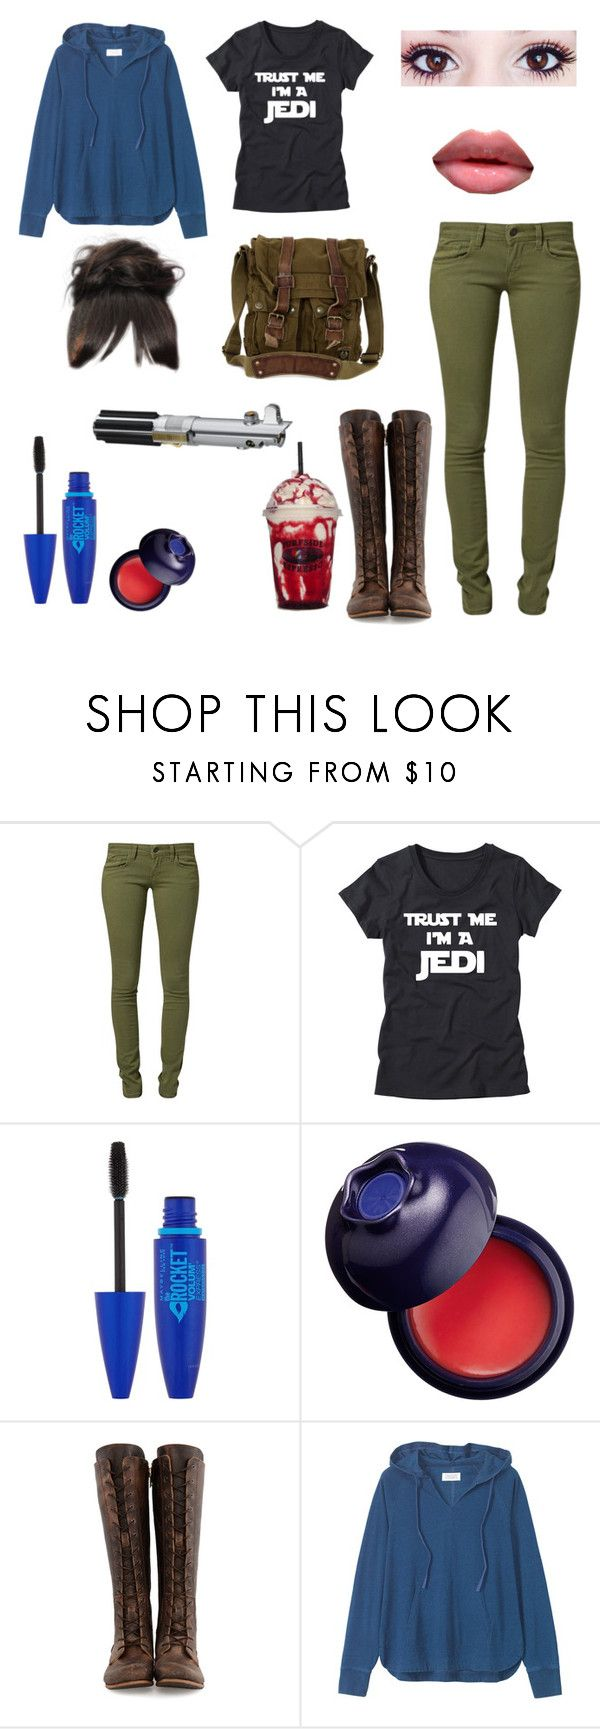 """""""My Star Wars character"""" by nick-unknown ❤ liked on Polyvore featuring Mavi, Maybelline, Tony Moly, John Fluevog, Toast, Belstaff and KEEP ME"""